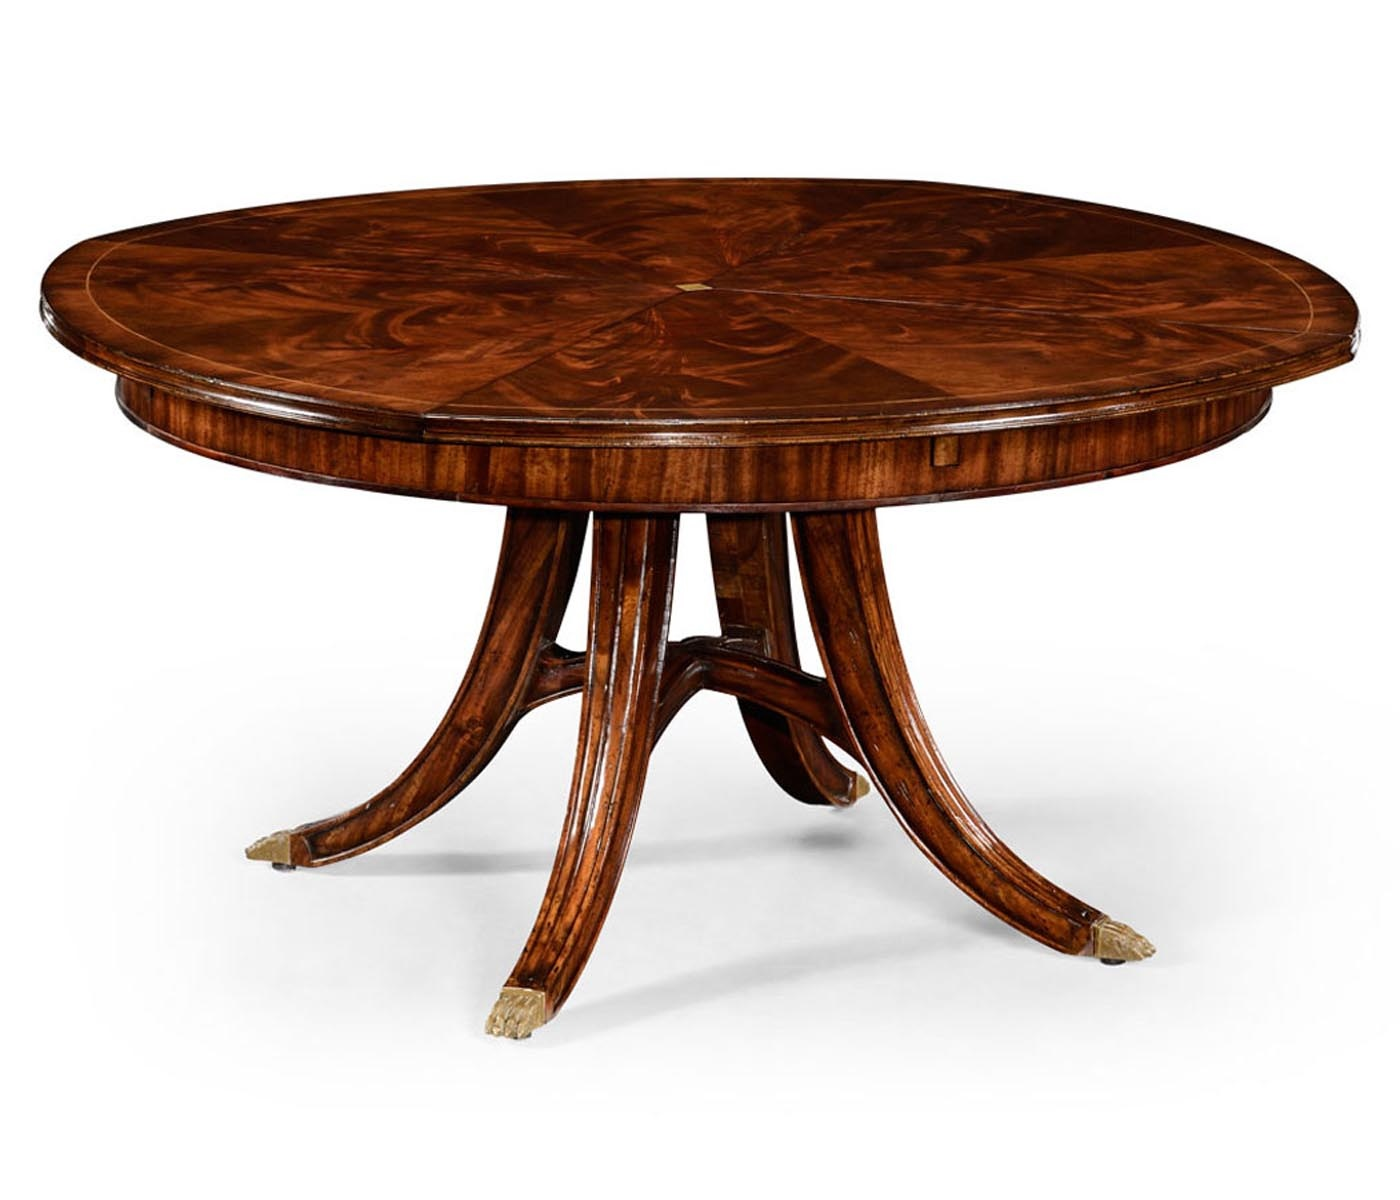 8 10 seater round extending dining table swanky interiors - Seater dining tables ...